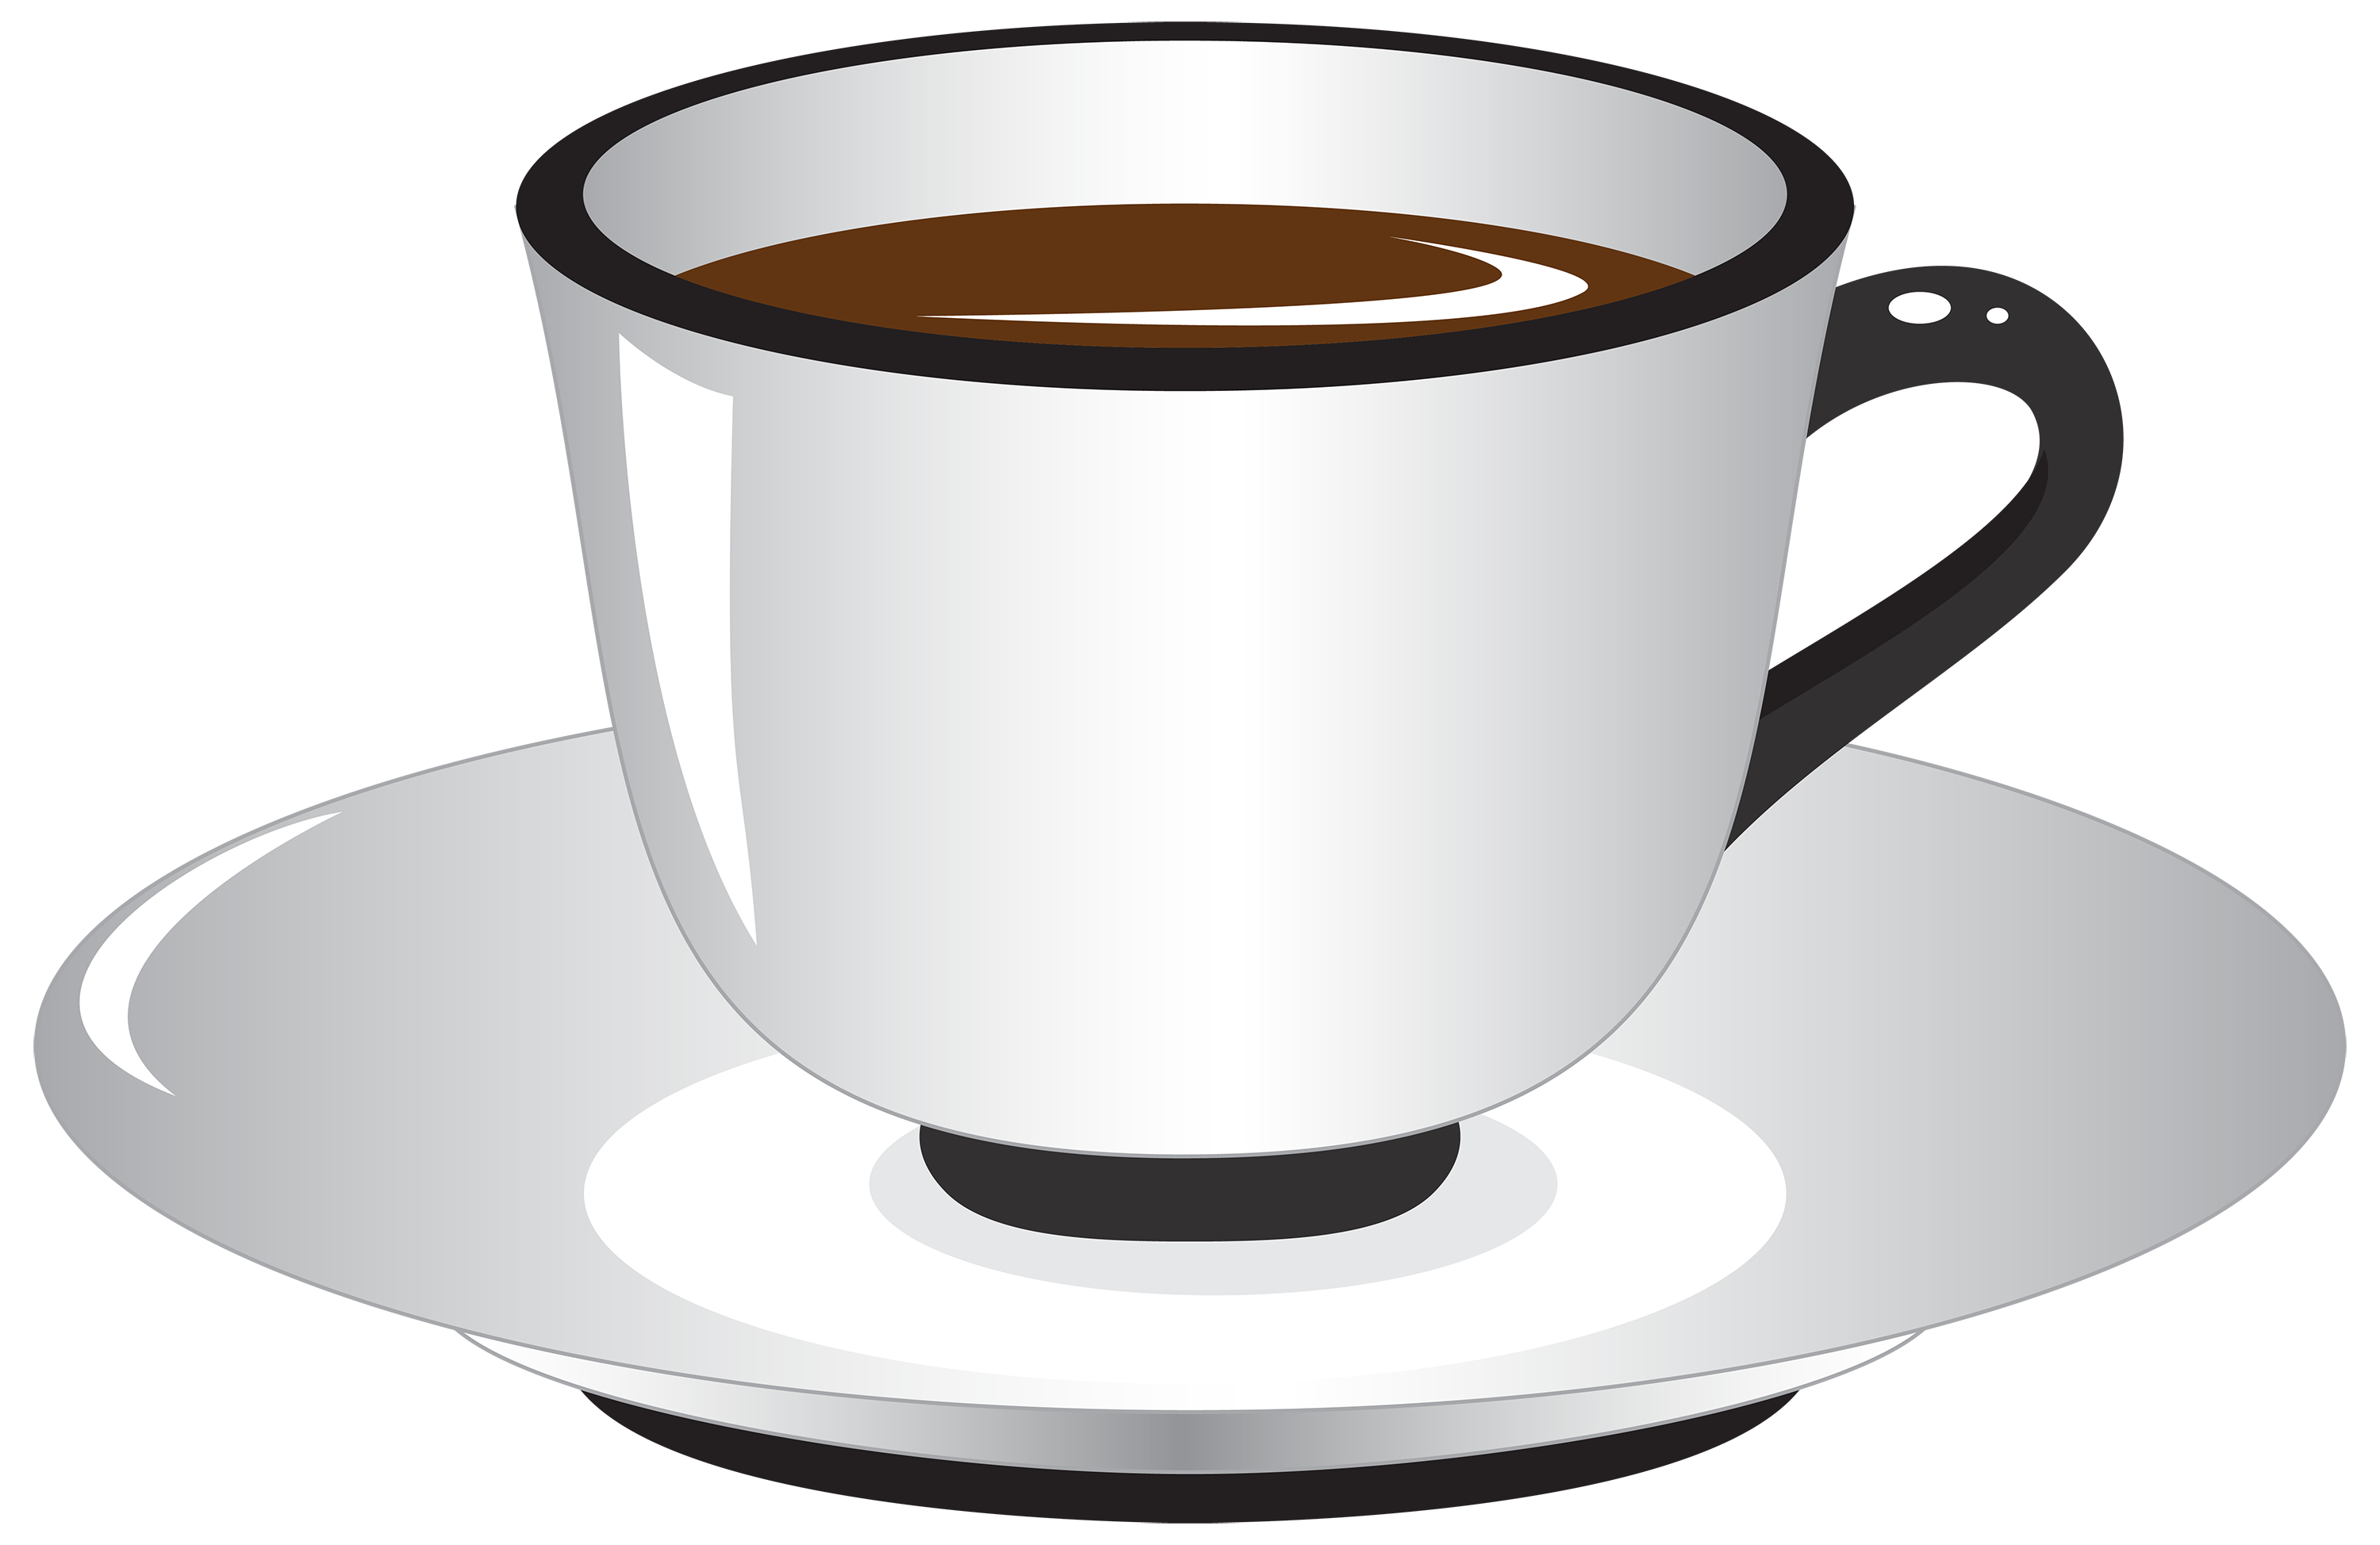 White and black coffee. Cup clipart svg transparent download